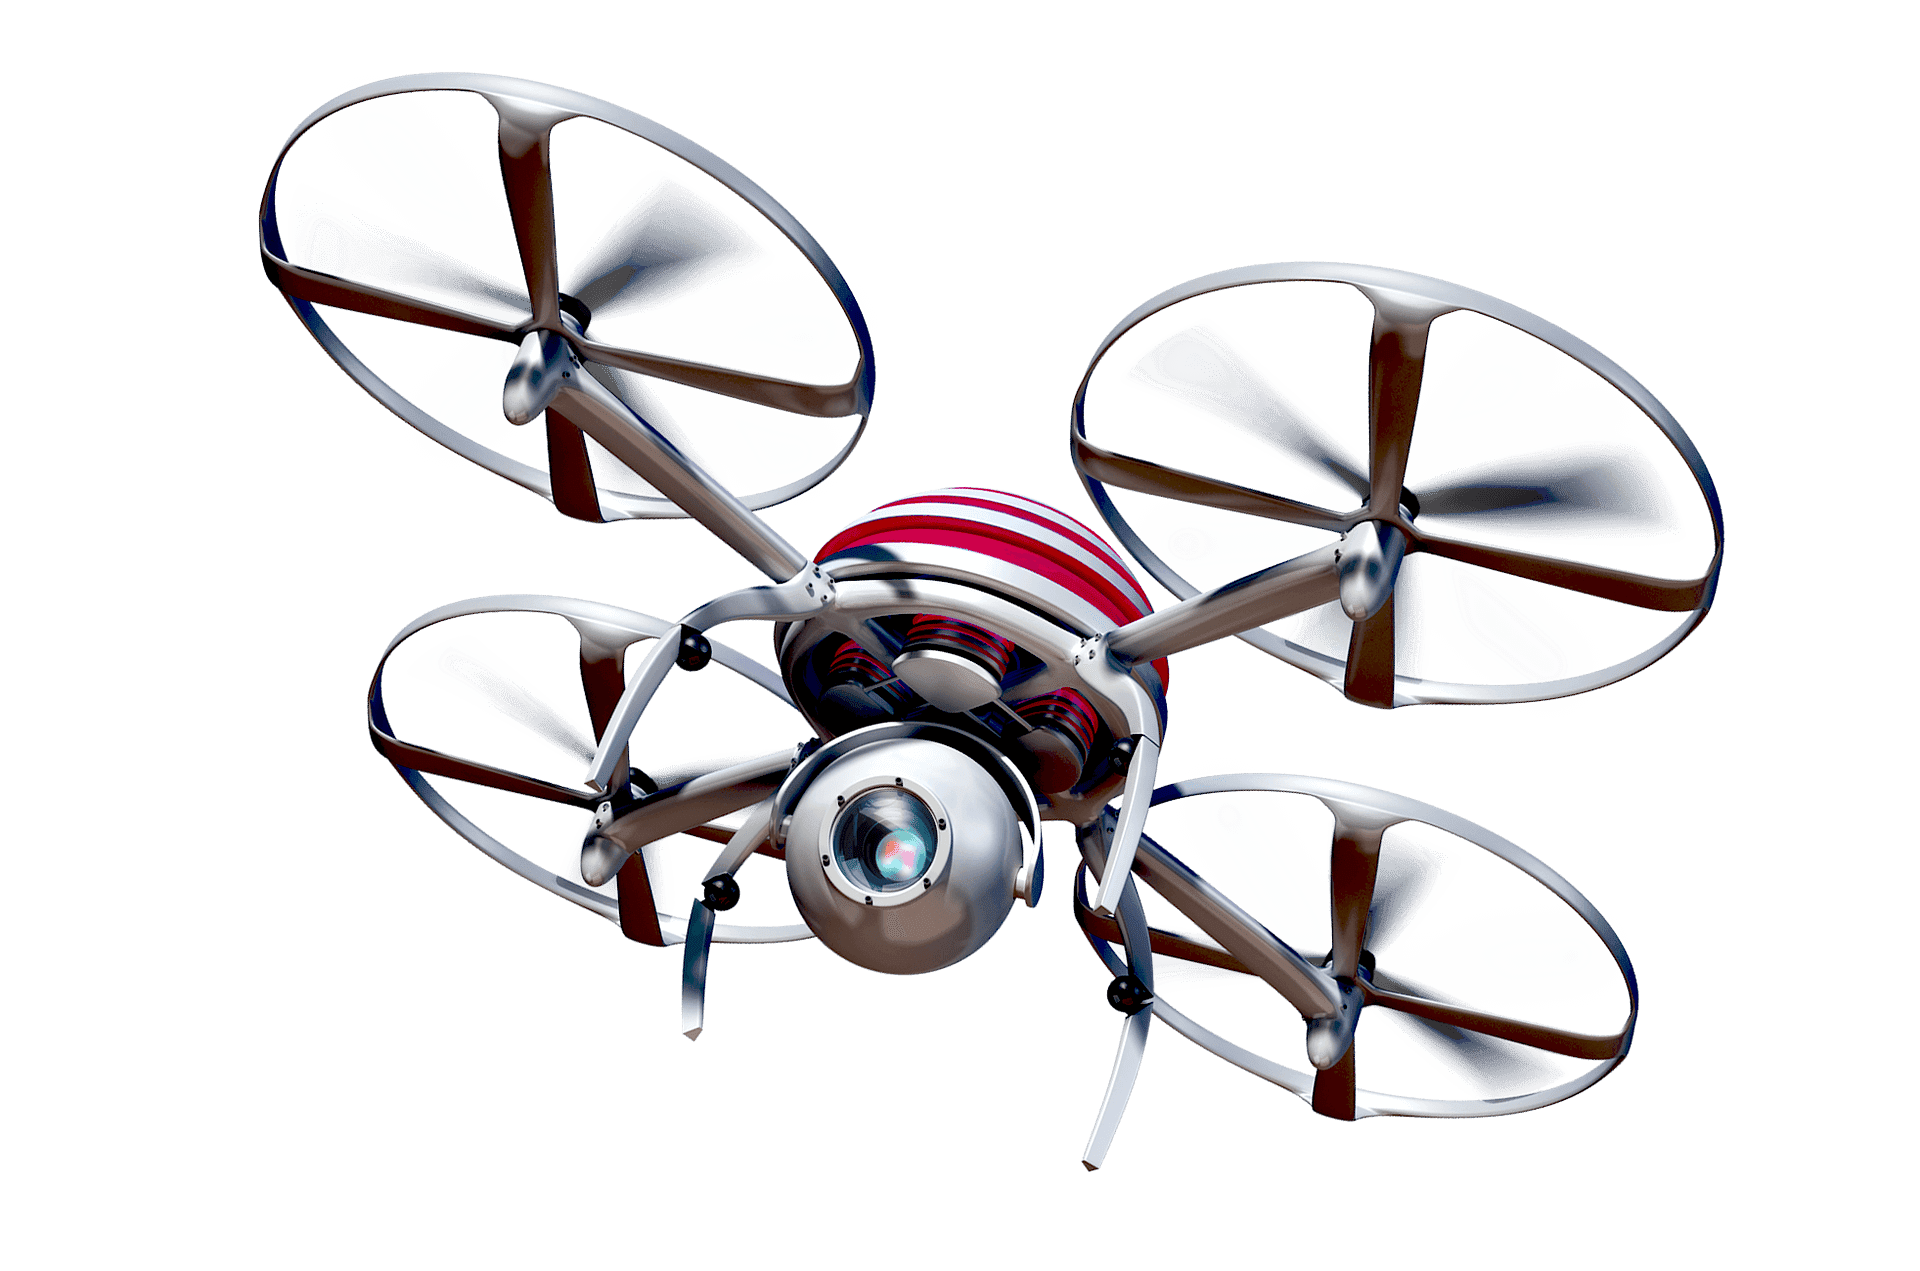 content/sv-se/images/repository/isc/2020/a-spy-drone-with-large-camera-lens.png